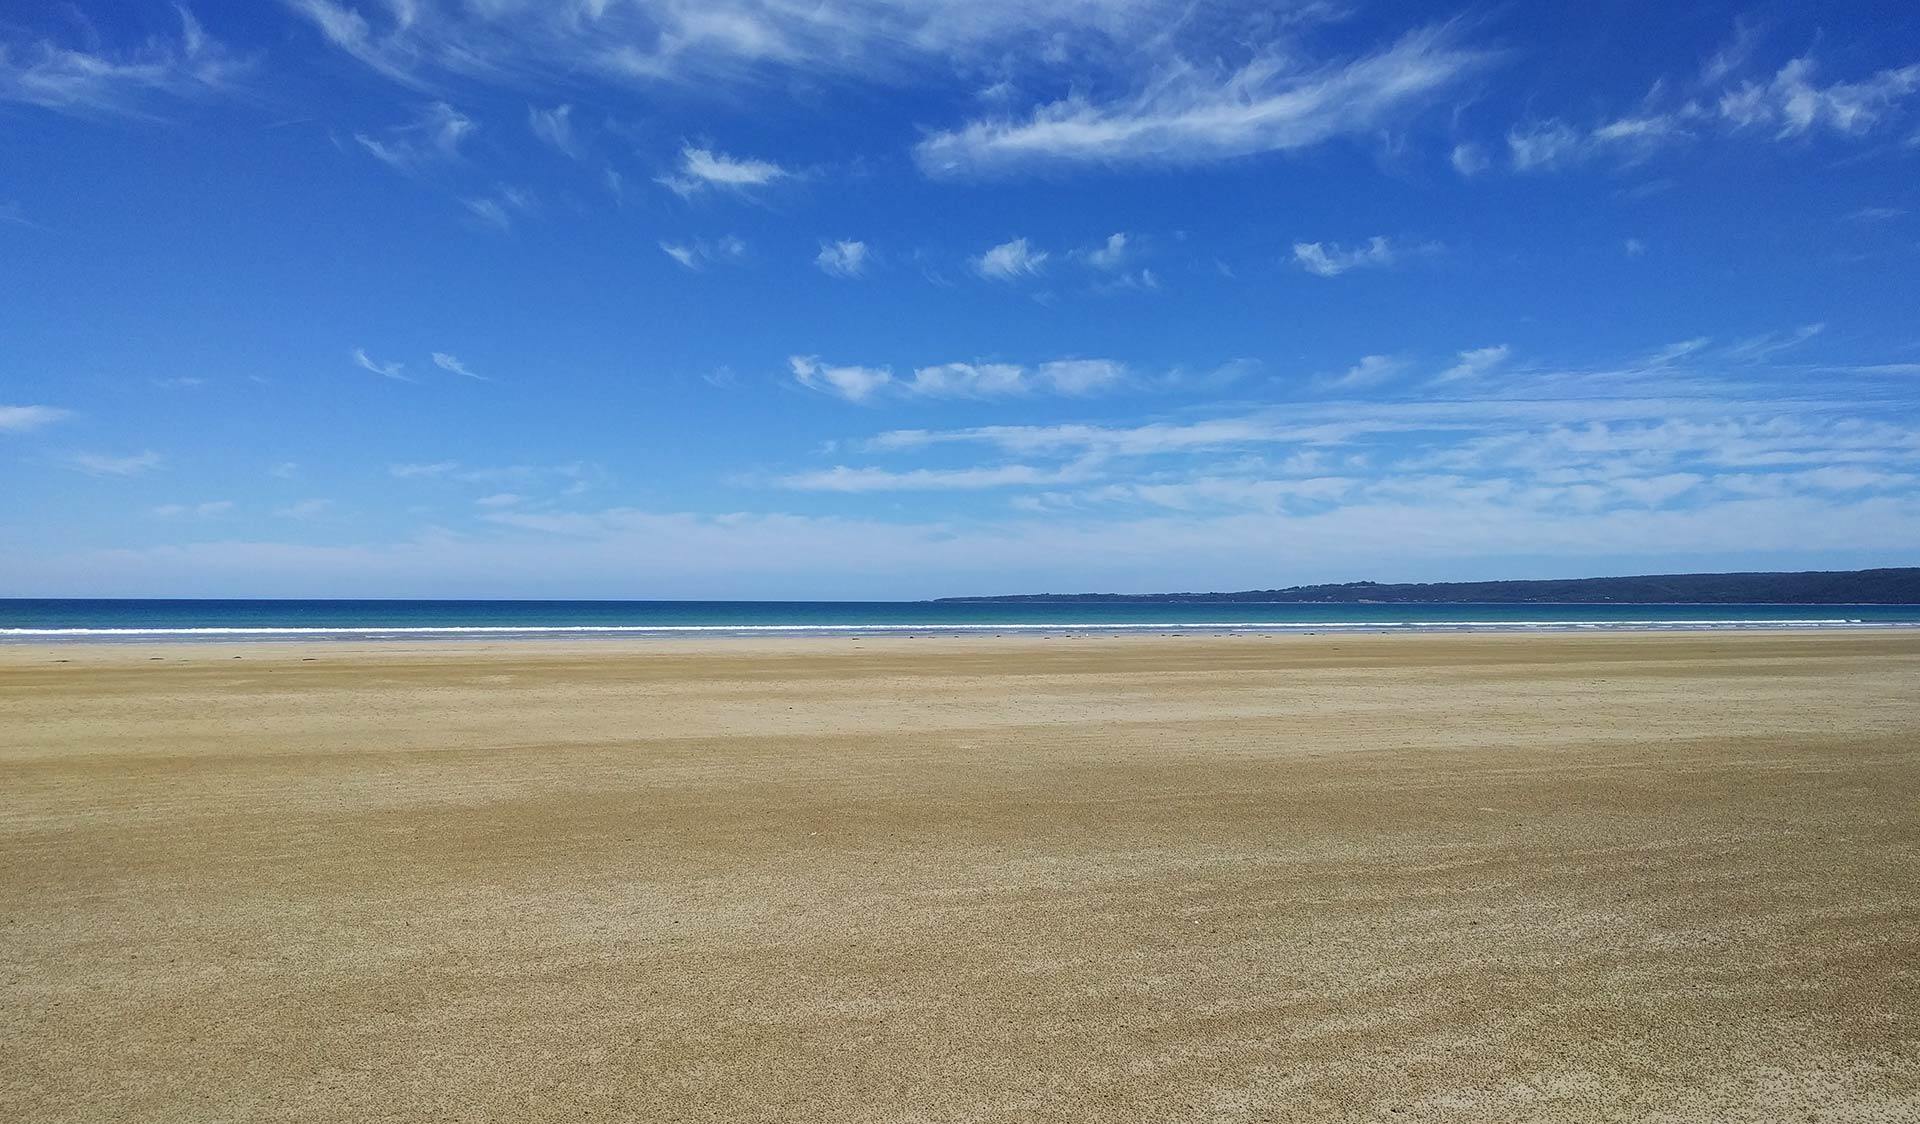 The beach at Waratah bay.